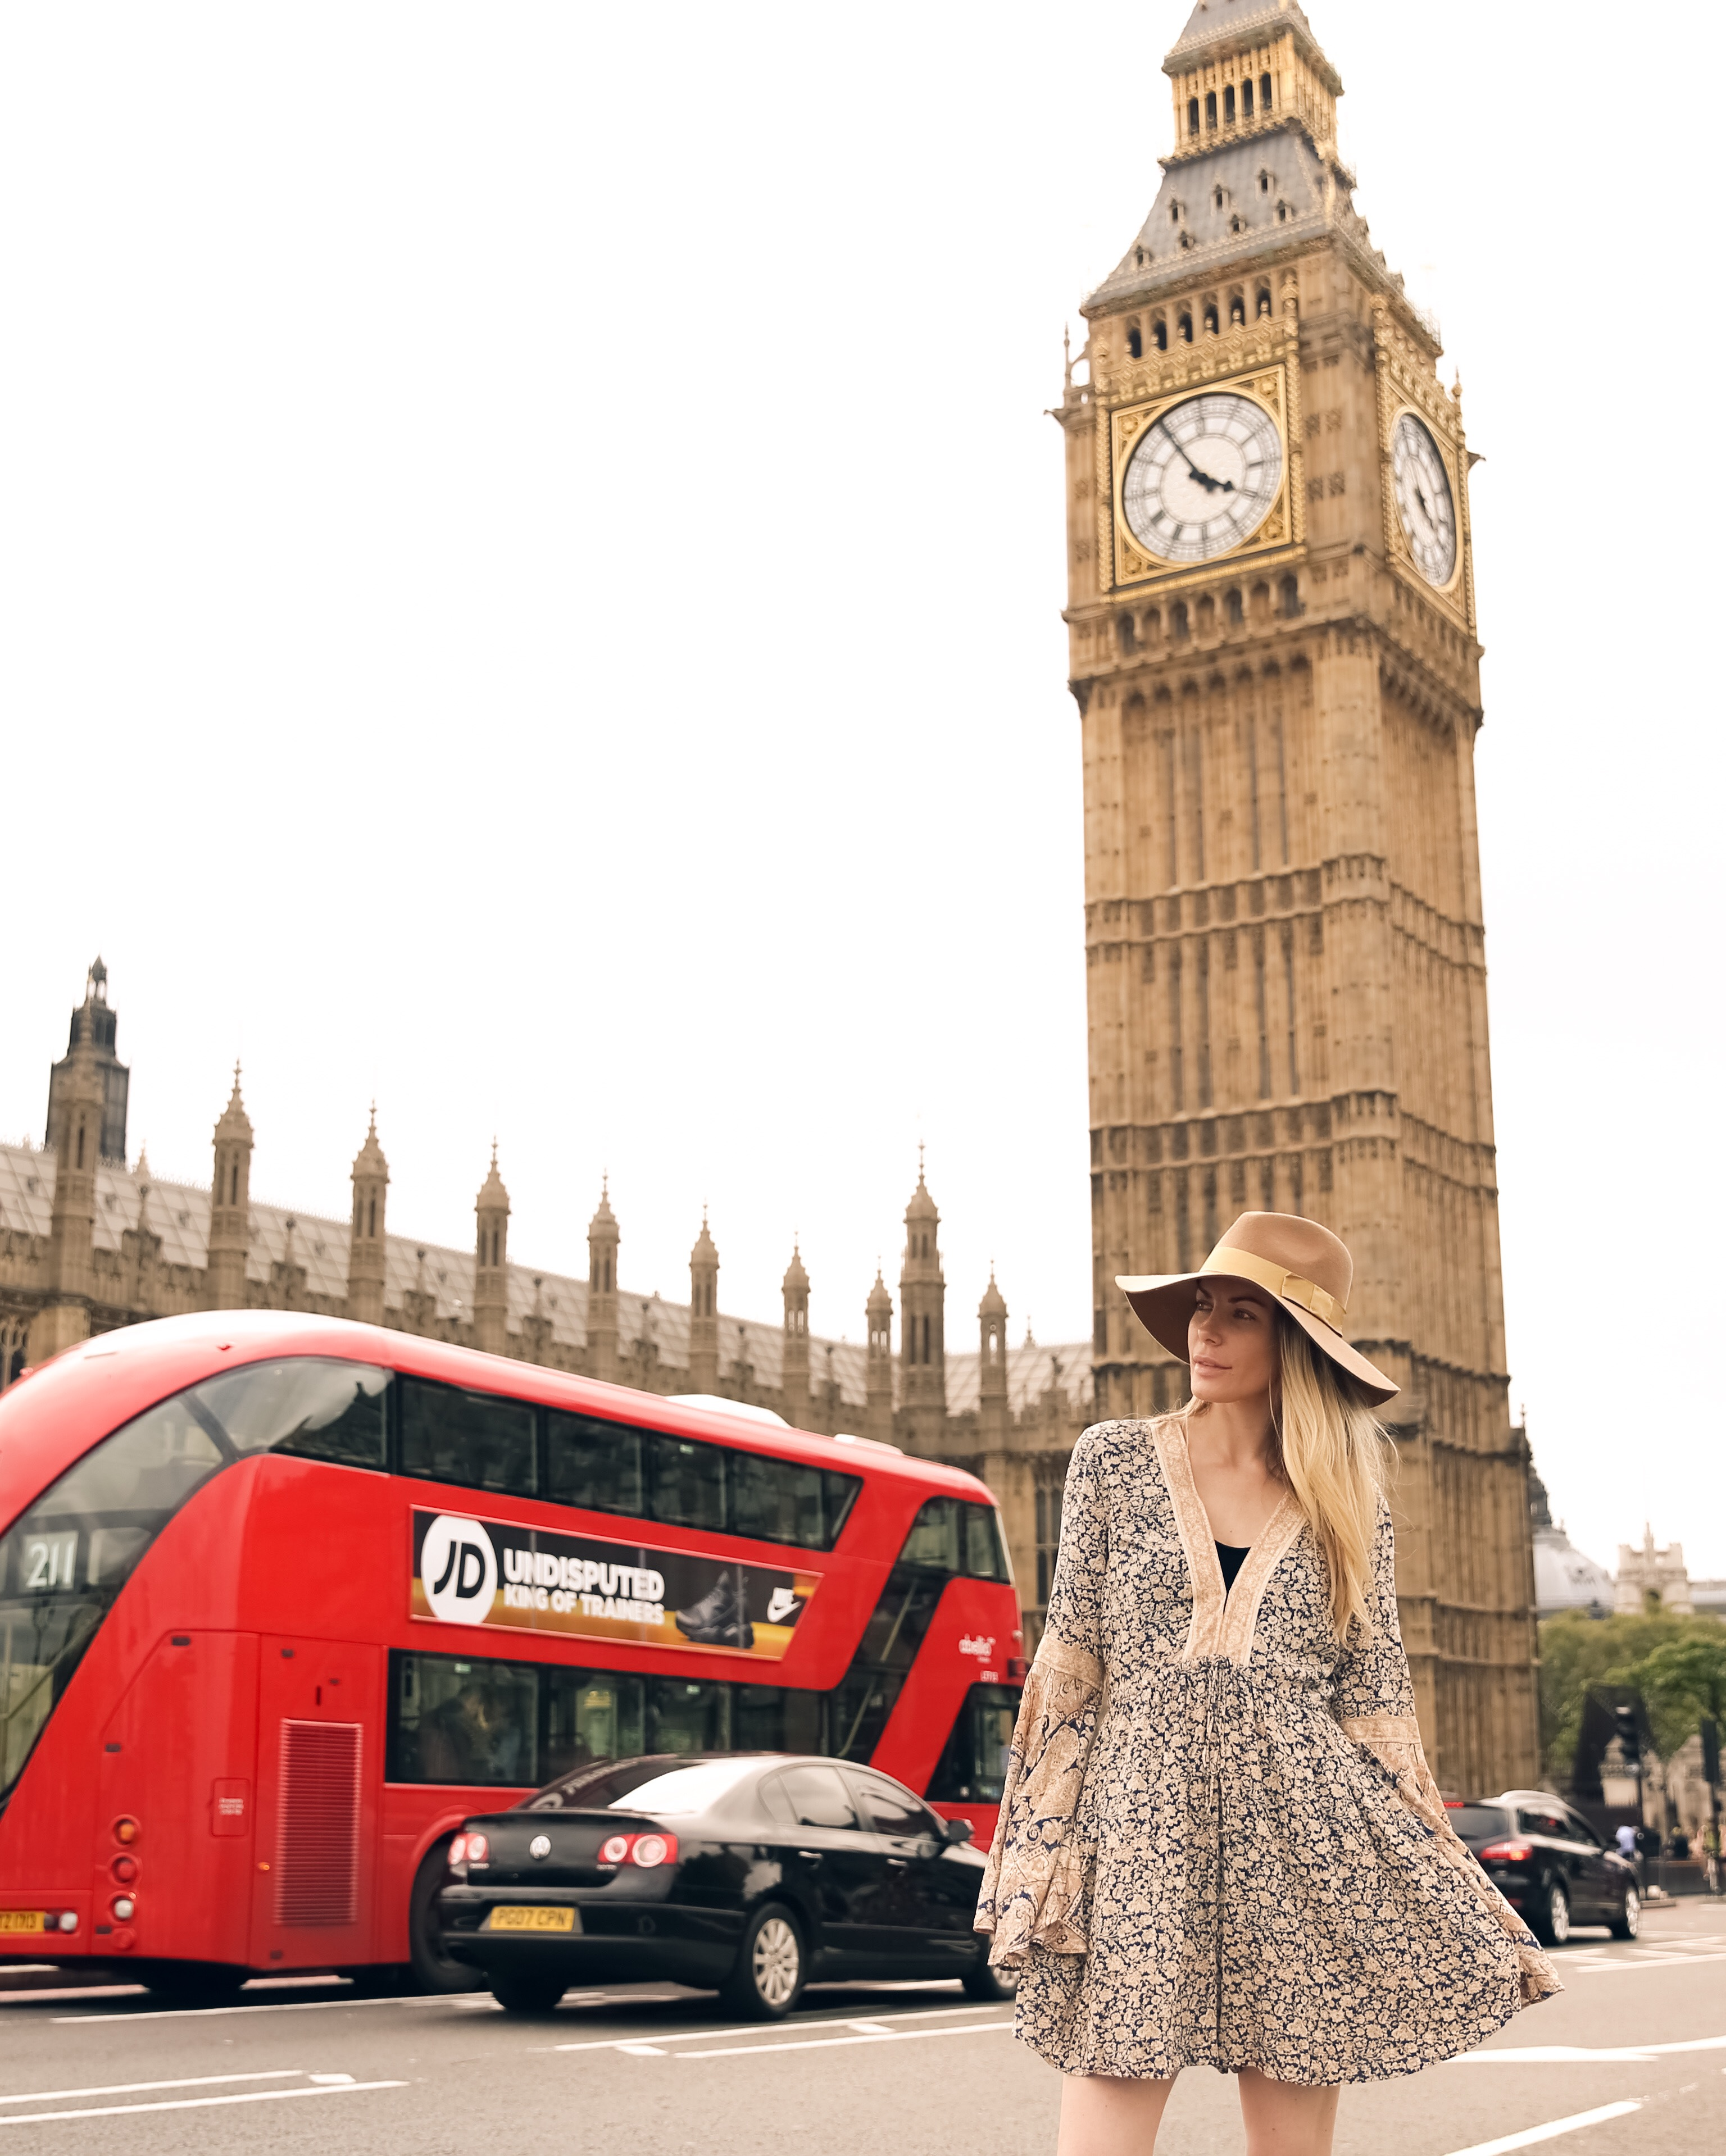 Tourist for a day in London, England